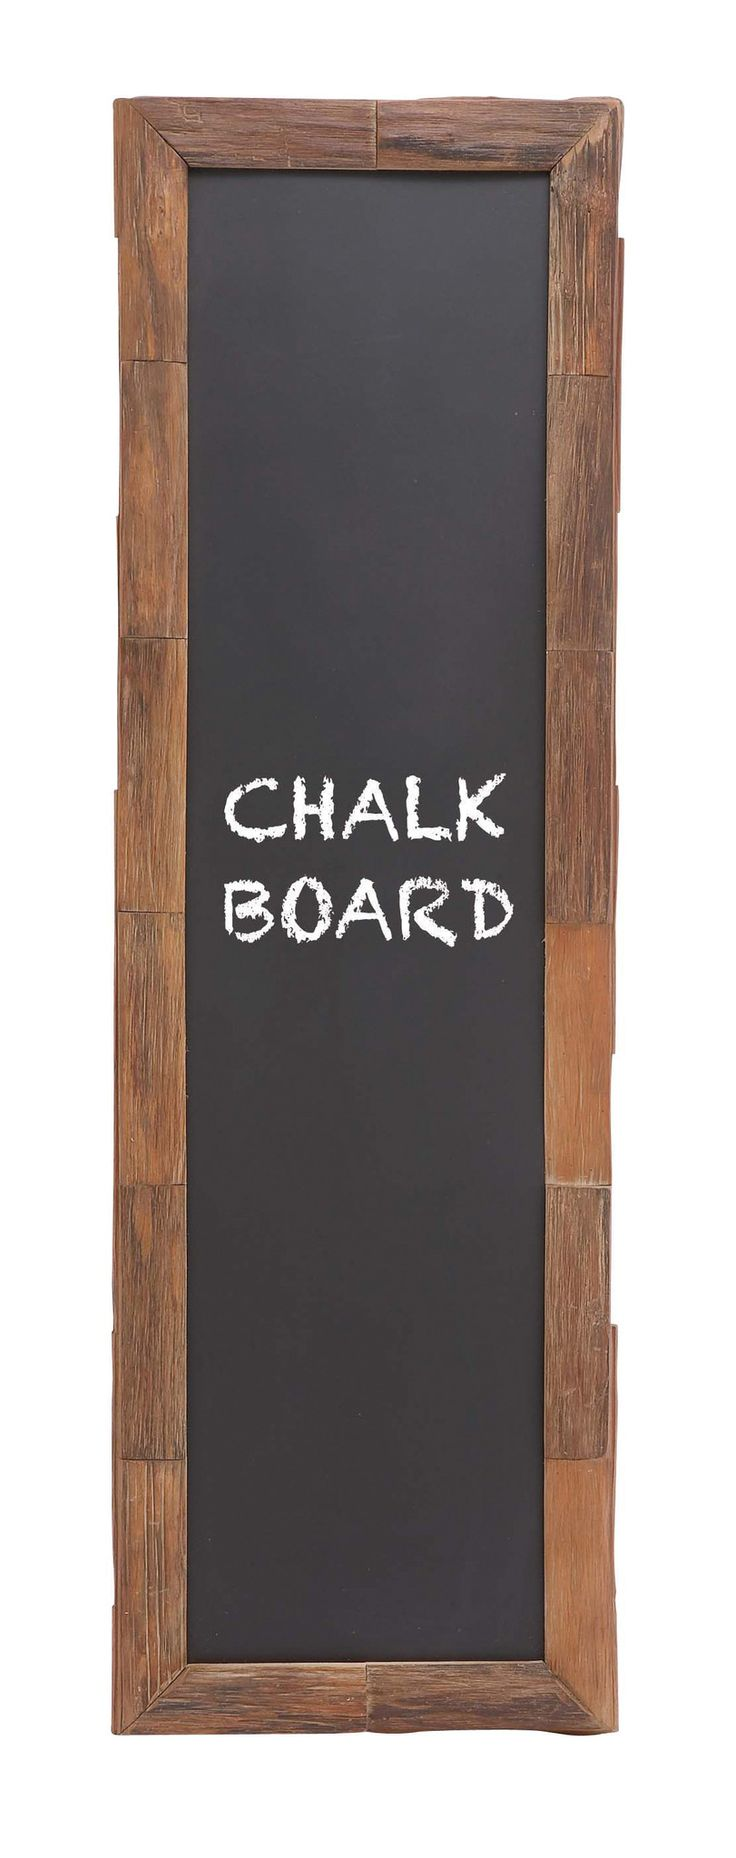 Vintage wooden music stand book stand by vintagearcheology on etsy - The Nostalgic Wood Chalkboard